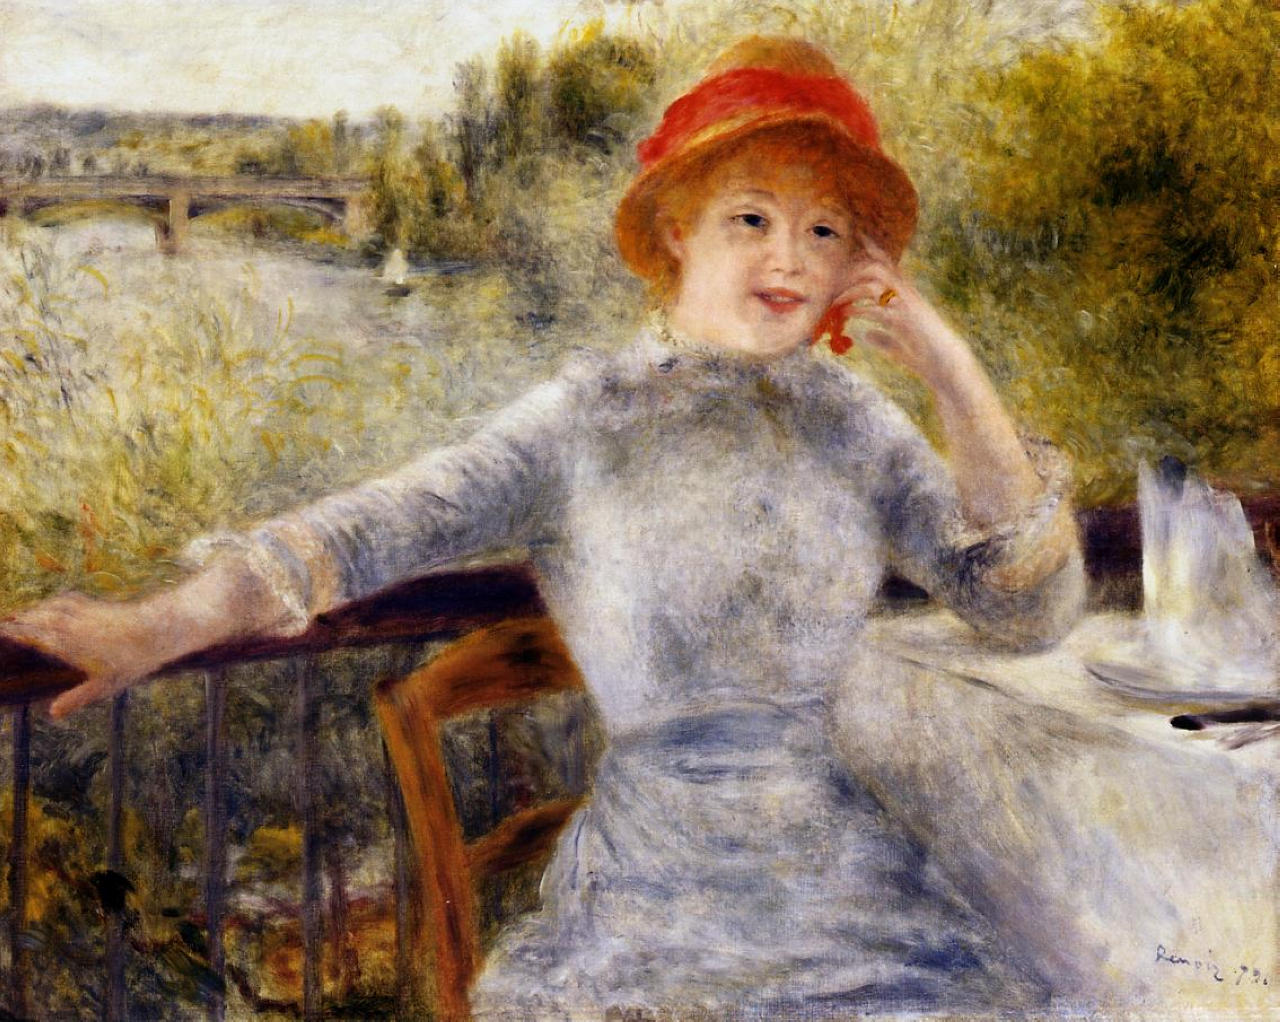 http://uploads3.wikipaintings.org/images/pierre-auguste-renoir/alphonsine-fournaise-on-the-isle-of-chatou-1879.jpg